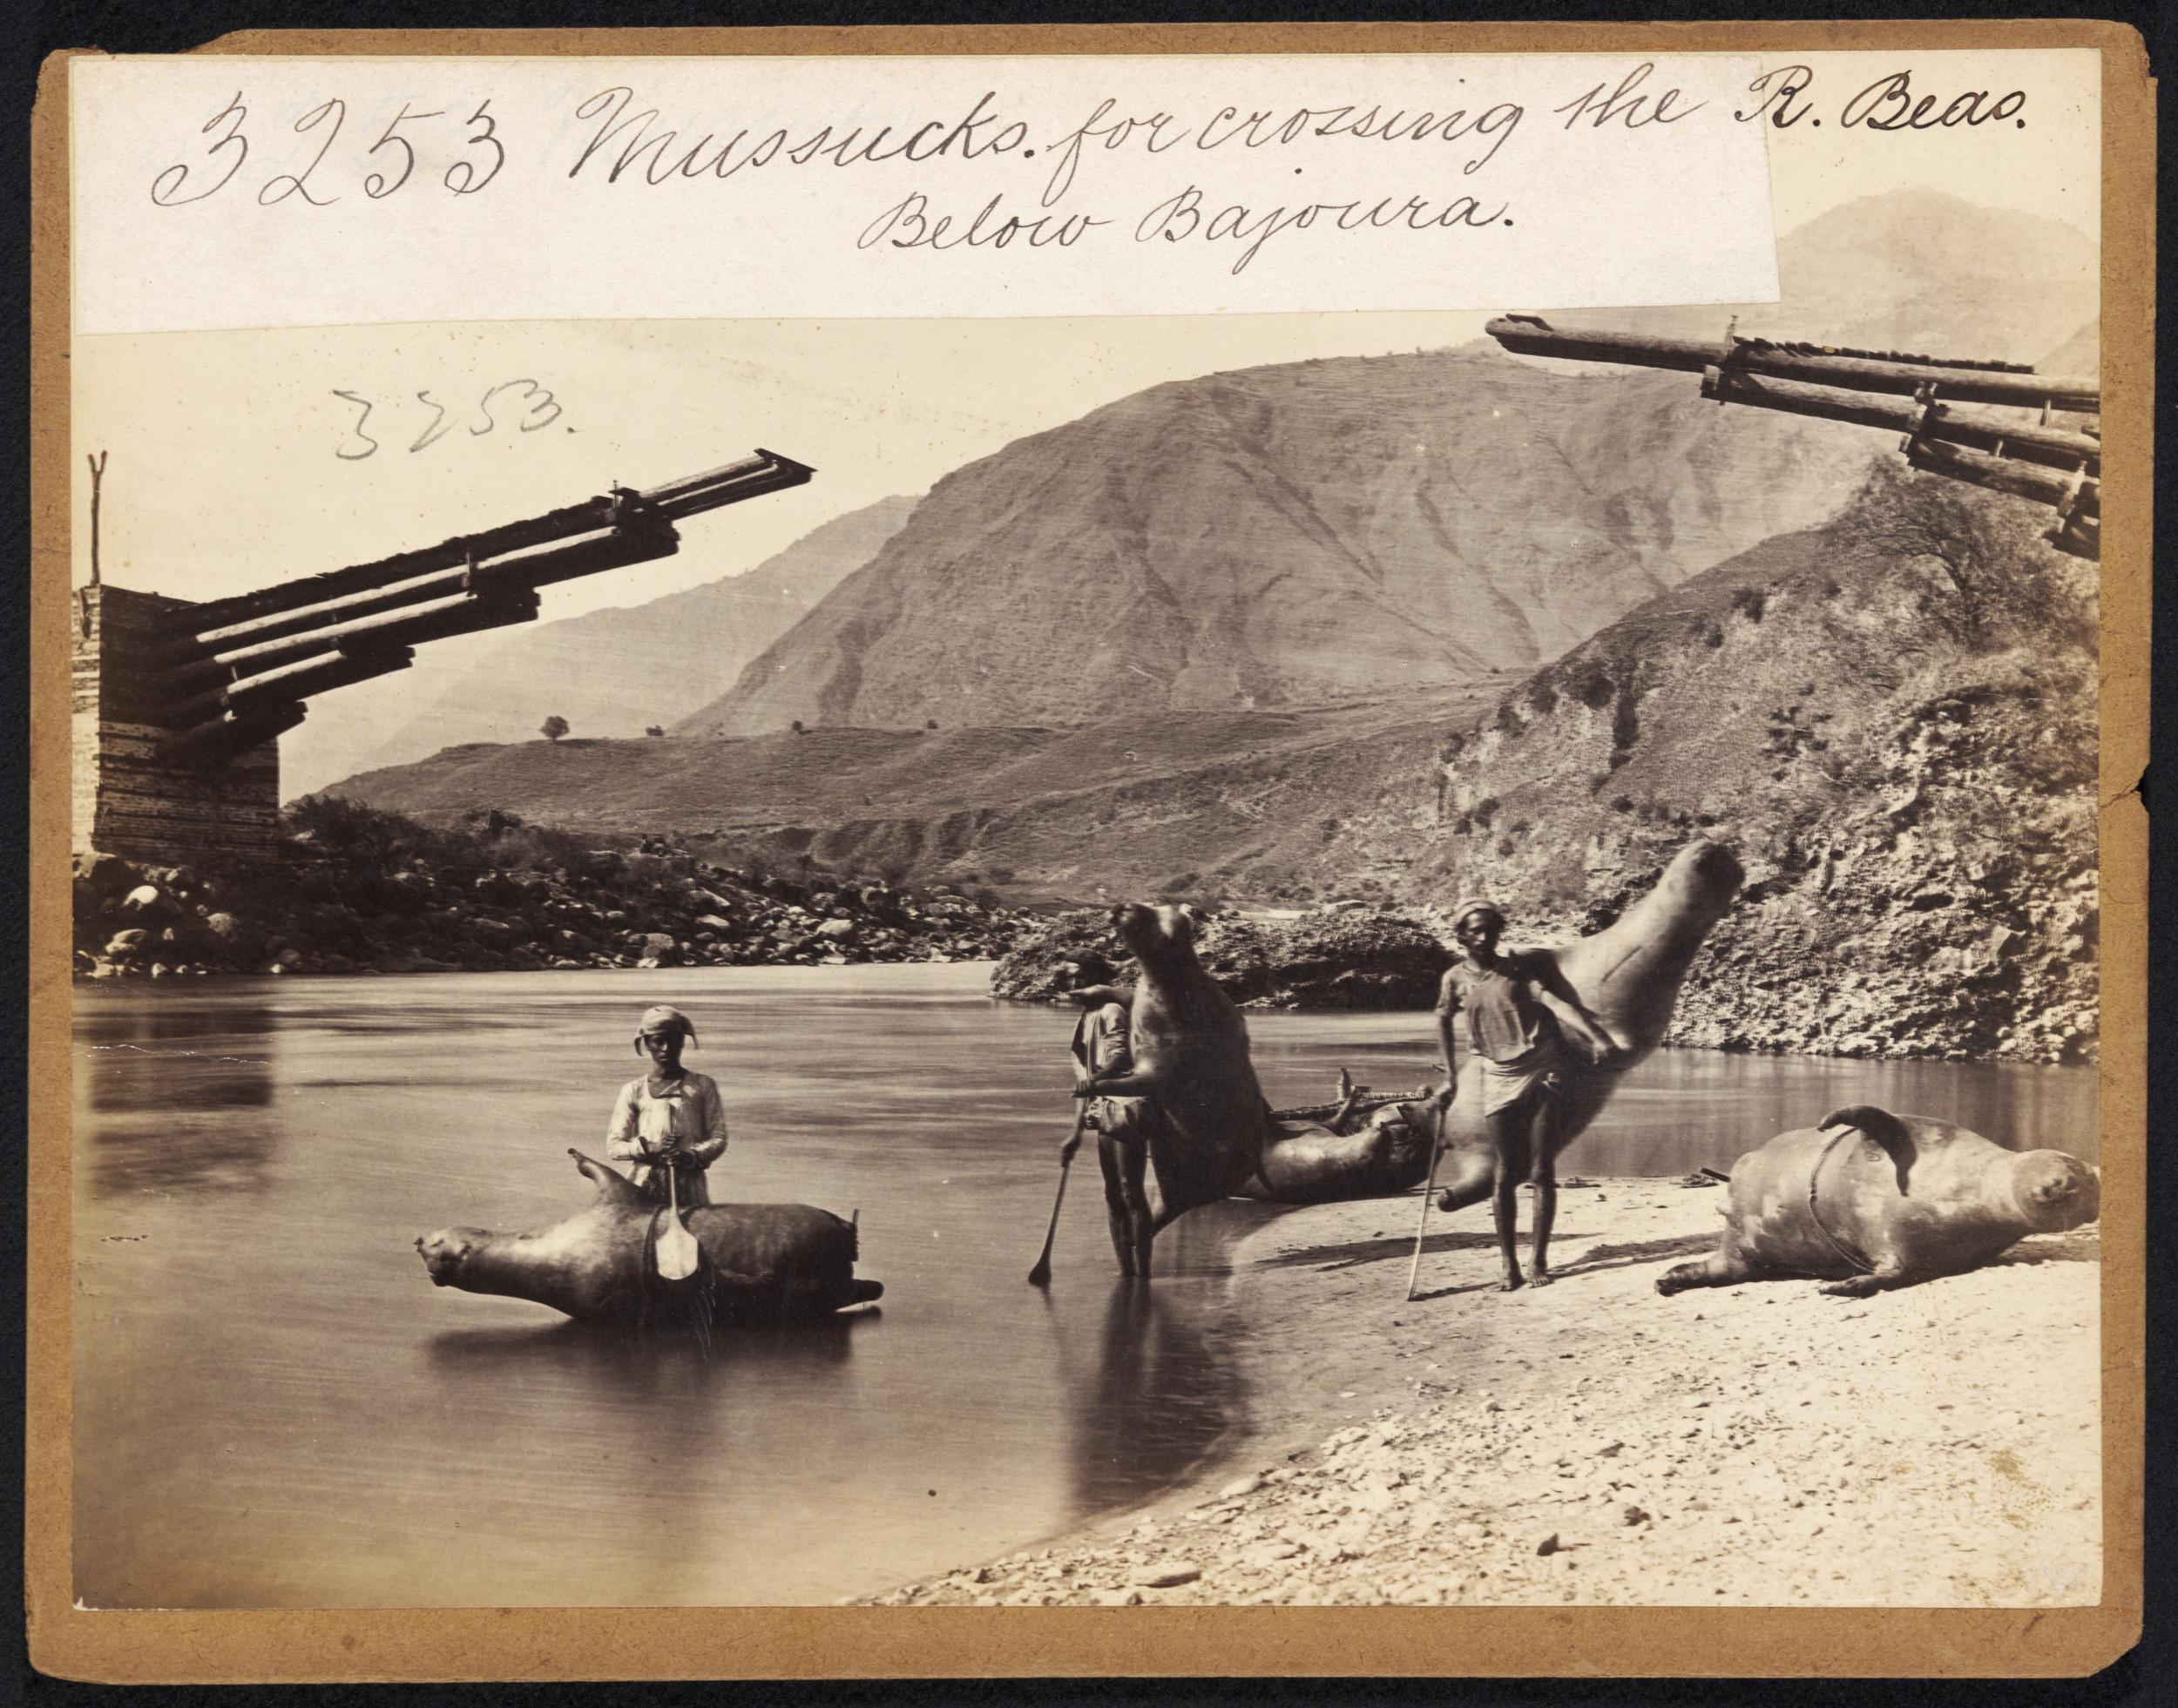 Mussucks (Inflated leather bag) carried by Men in a River - India, c1870's